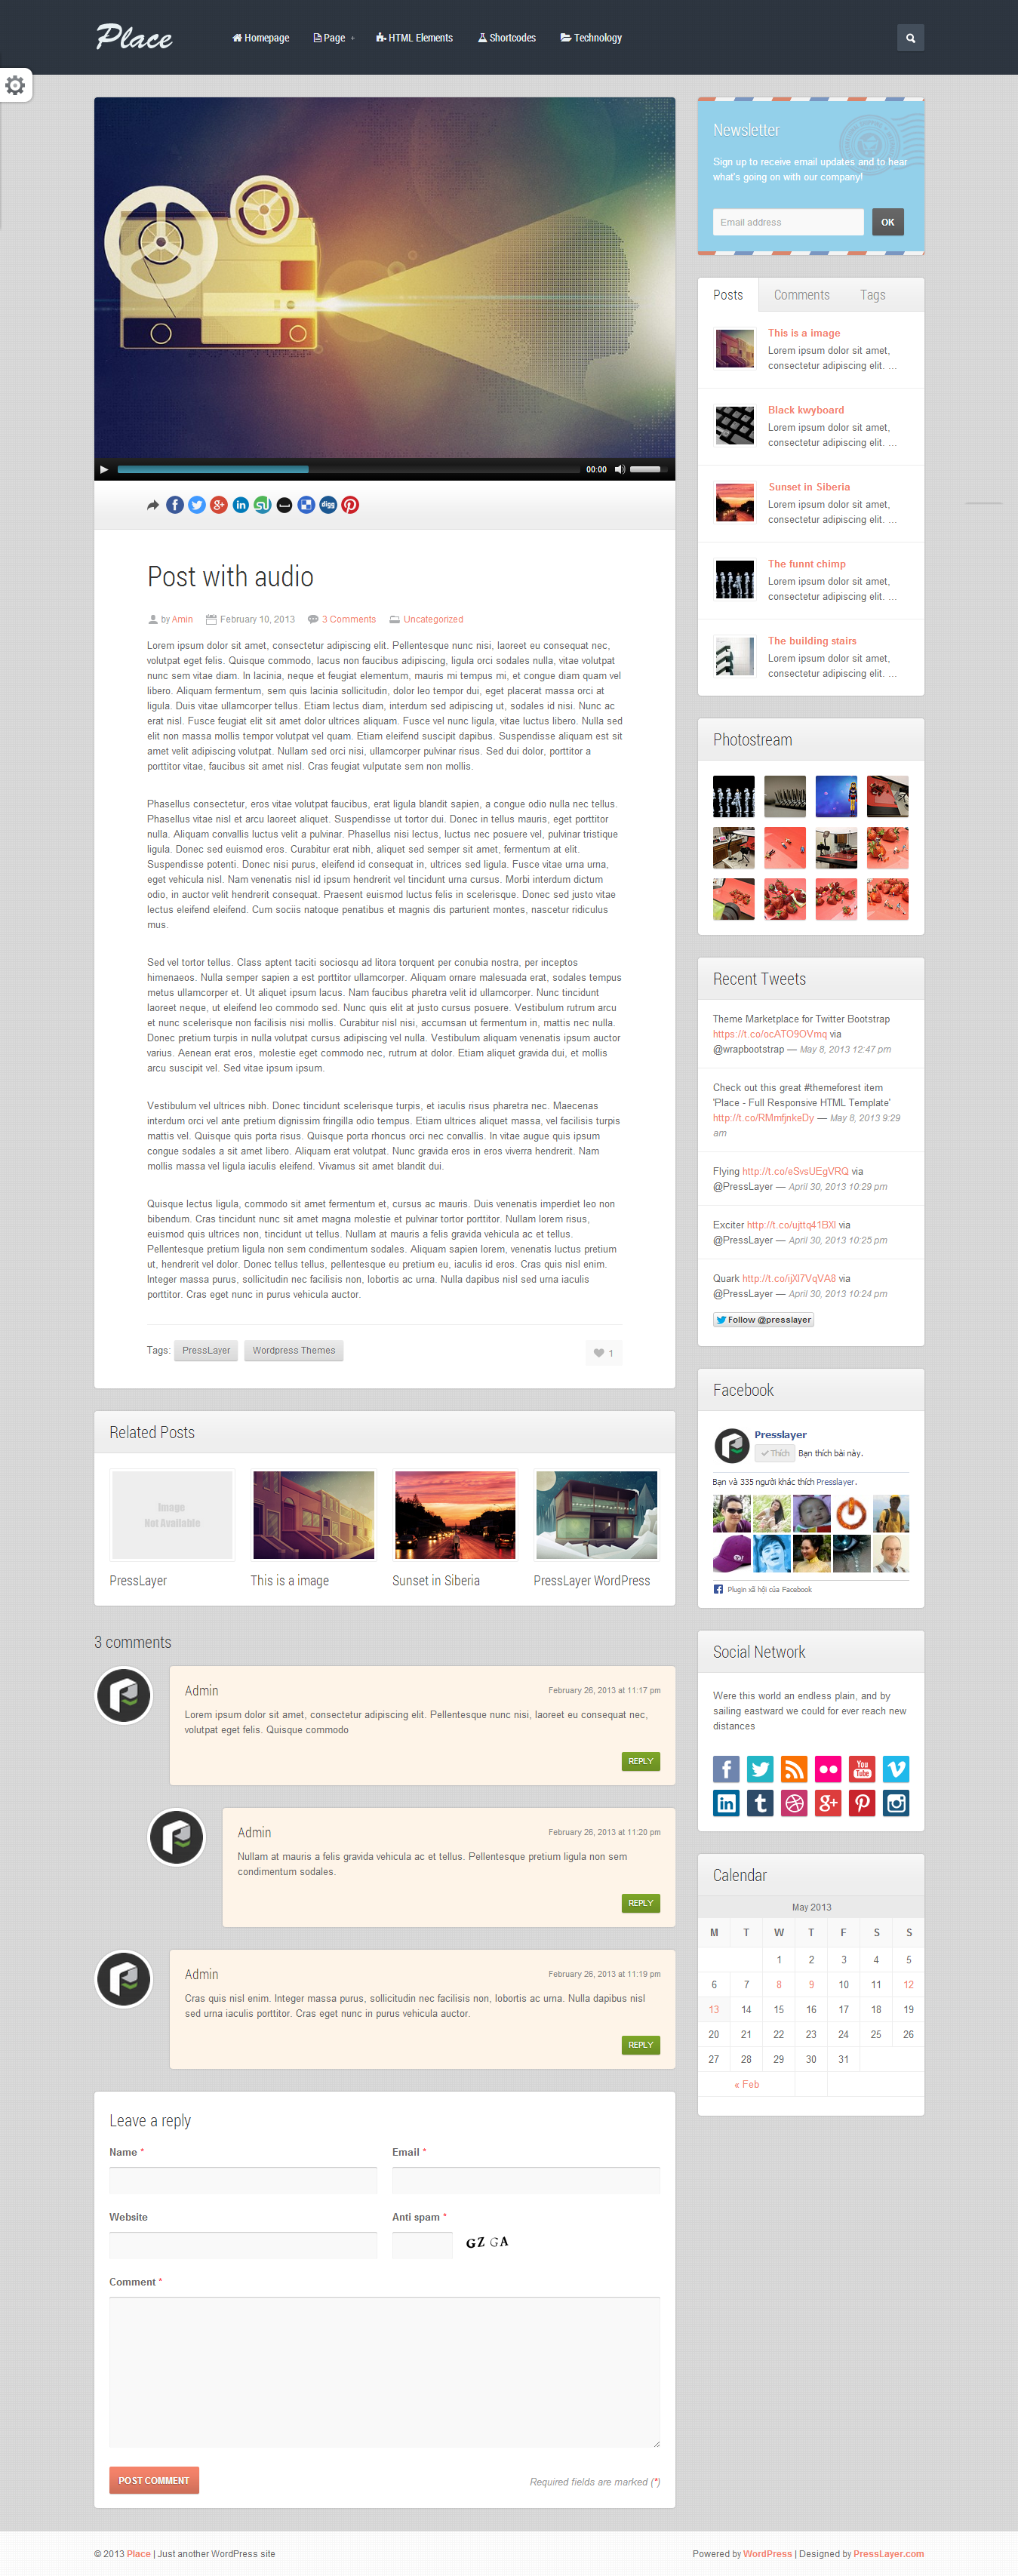 Place - Responsive Blogging WordPress Theme - 02_Single.png Screenshot of single post